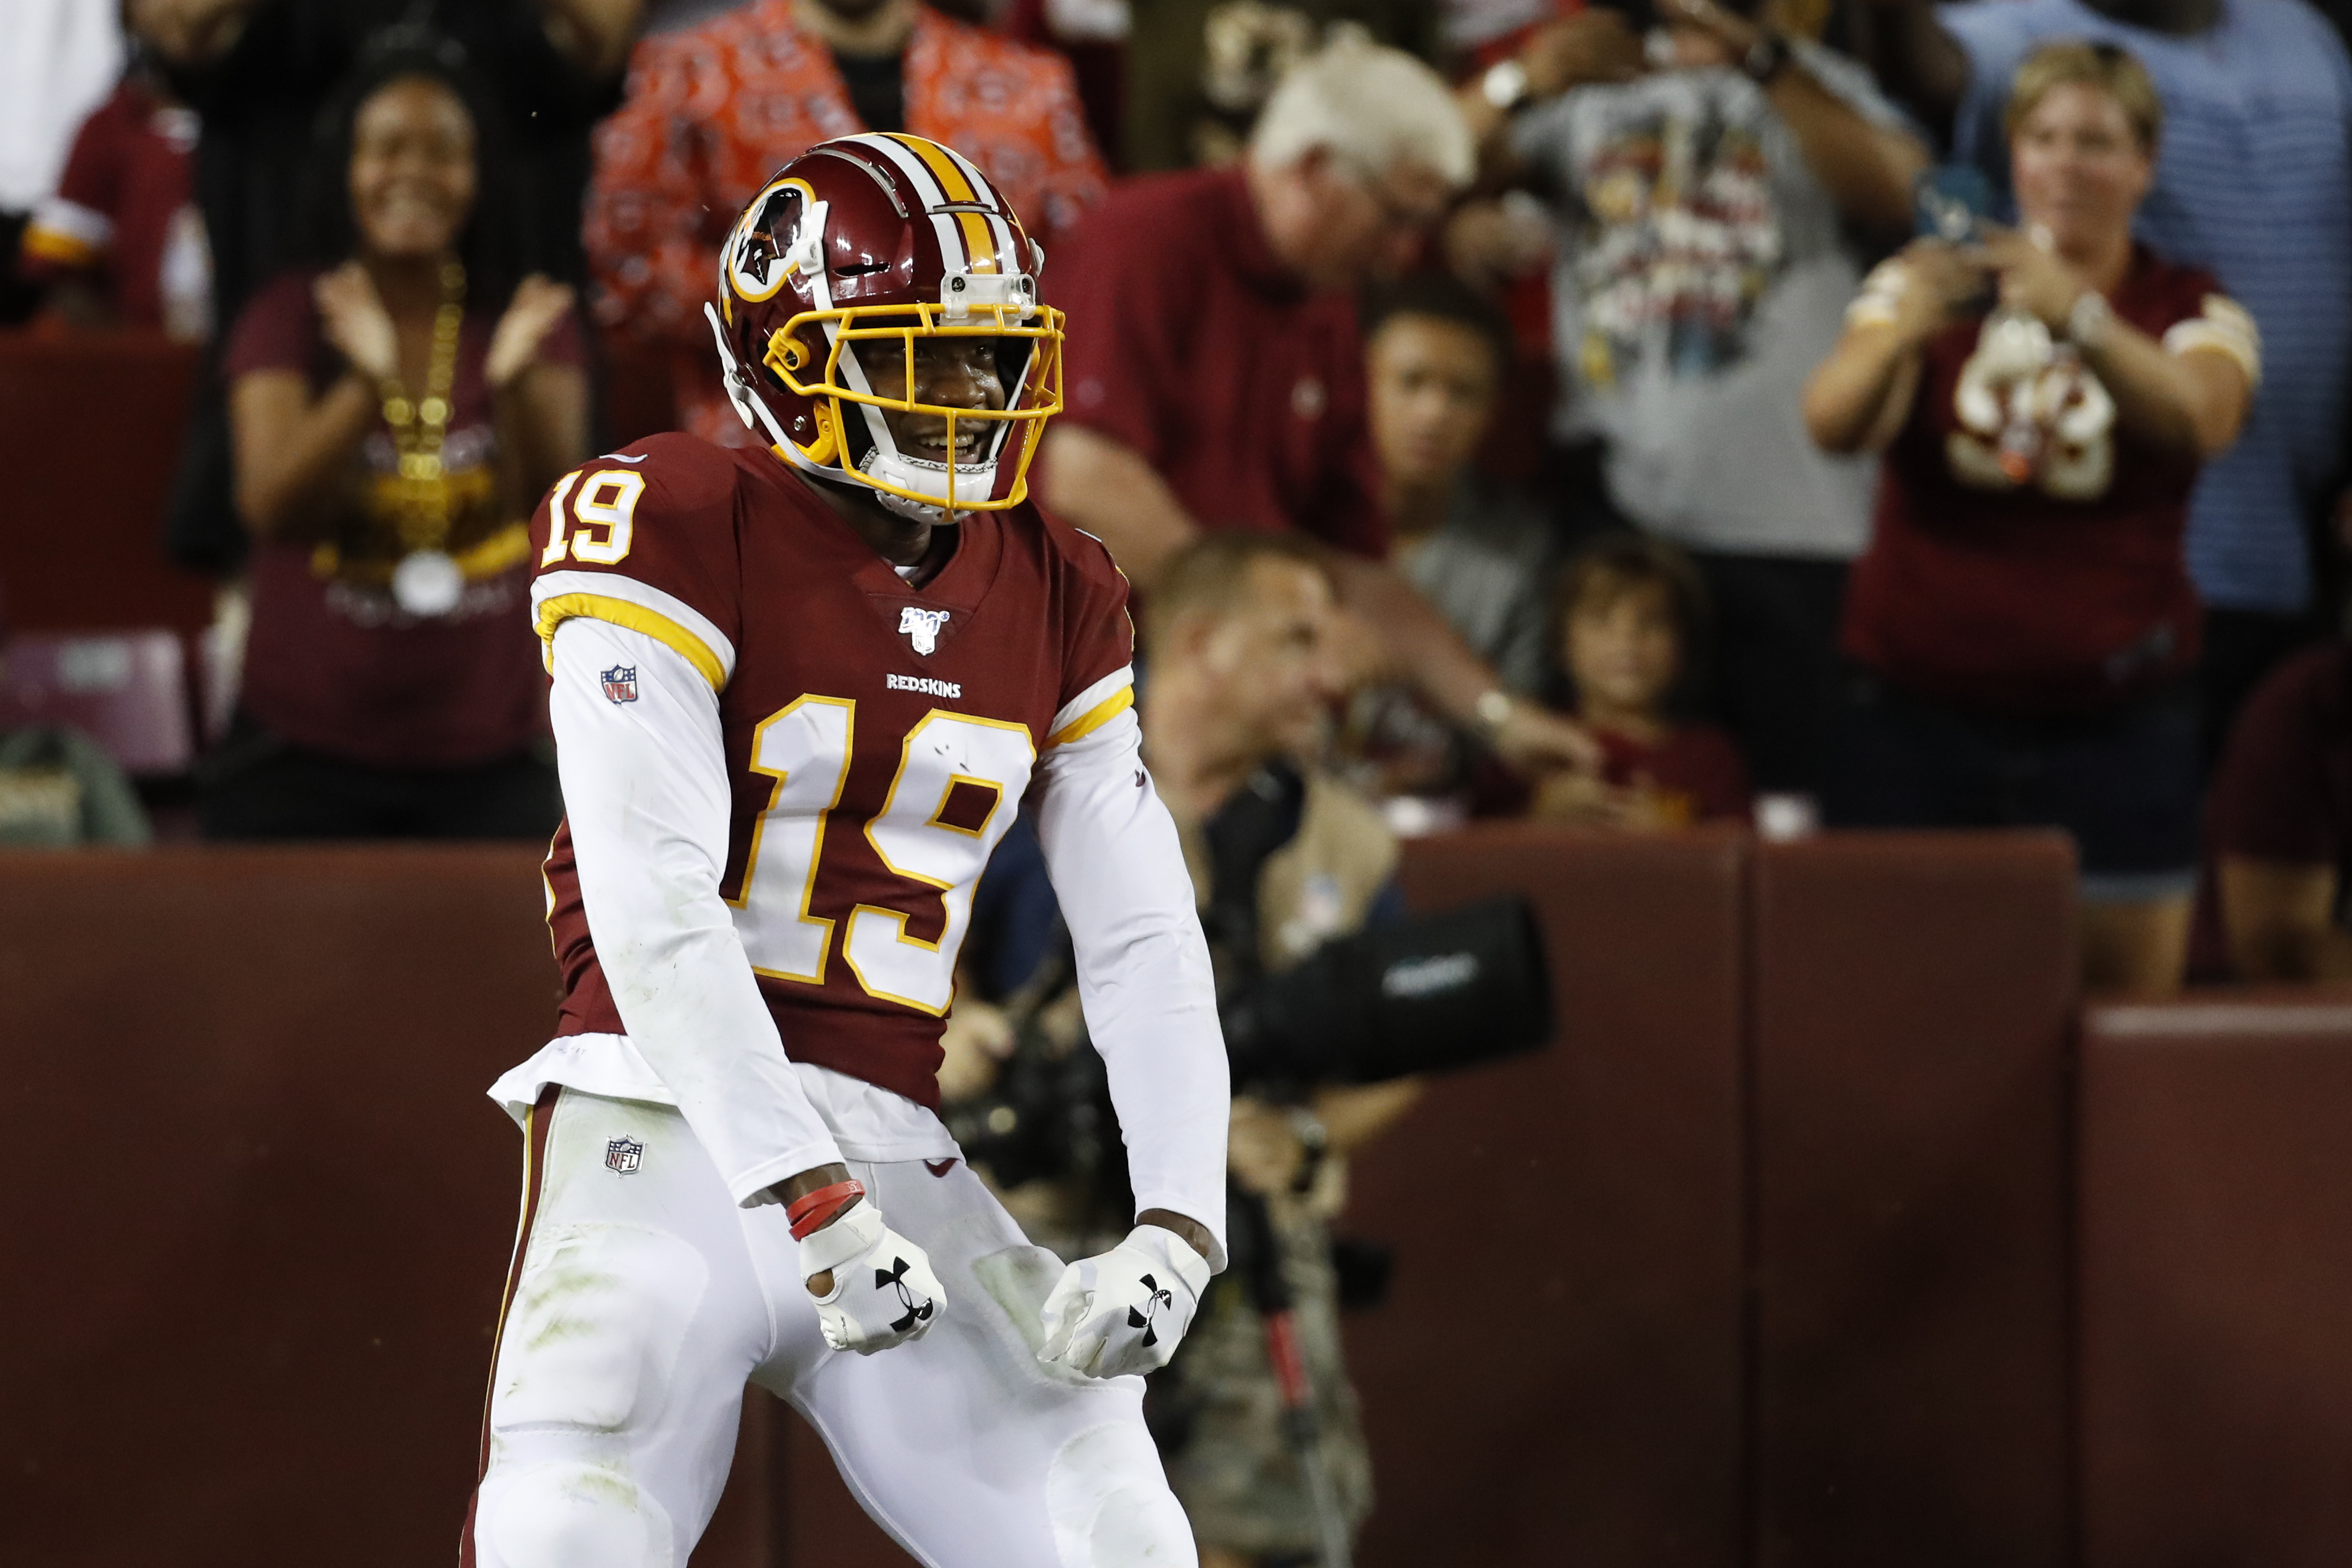 The Eagles (apparently) have best practice squad player in the league in this former Redskins WR